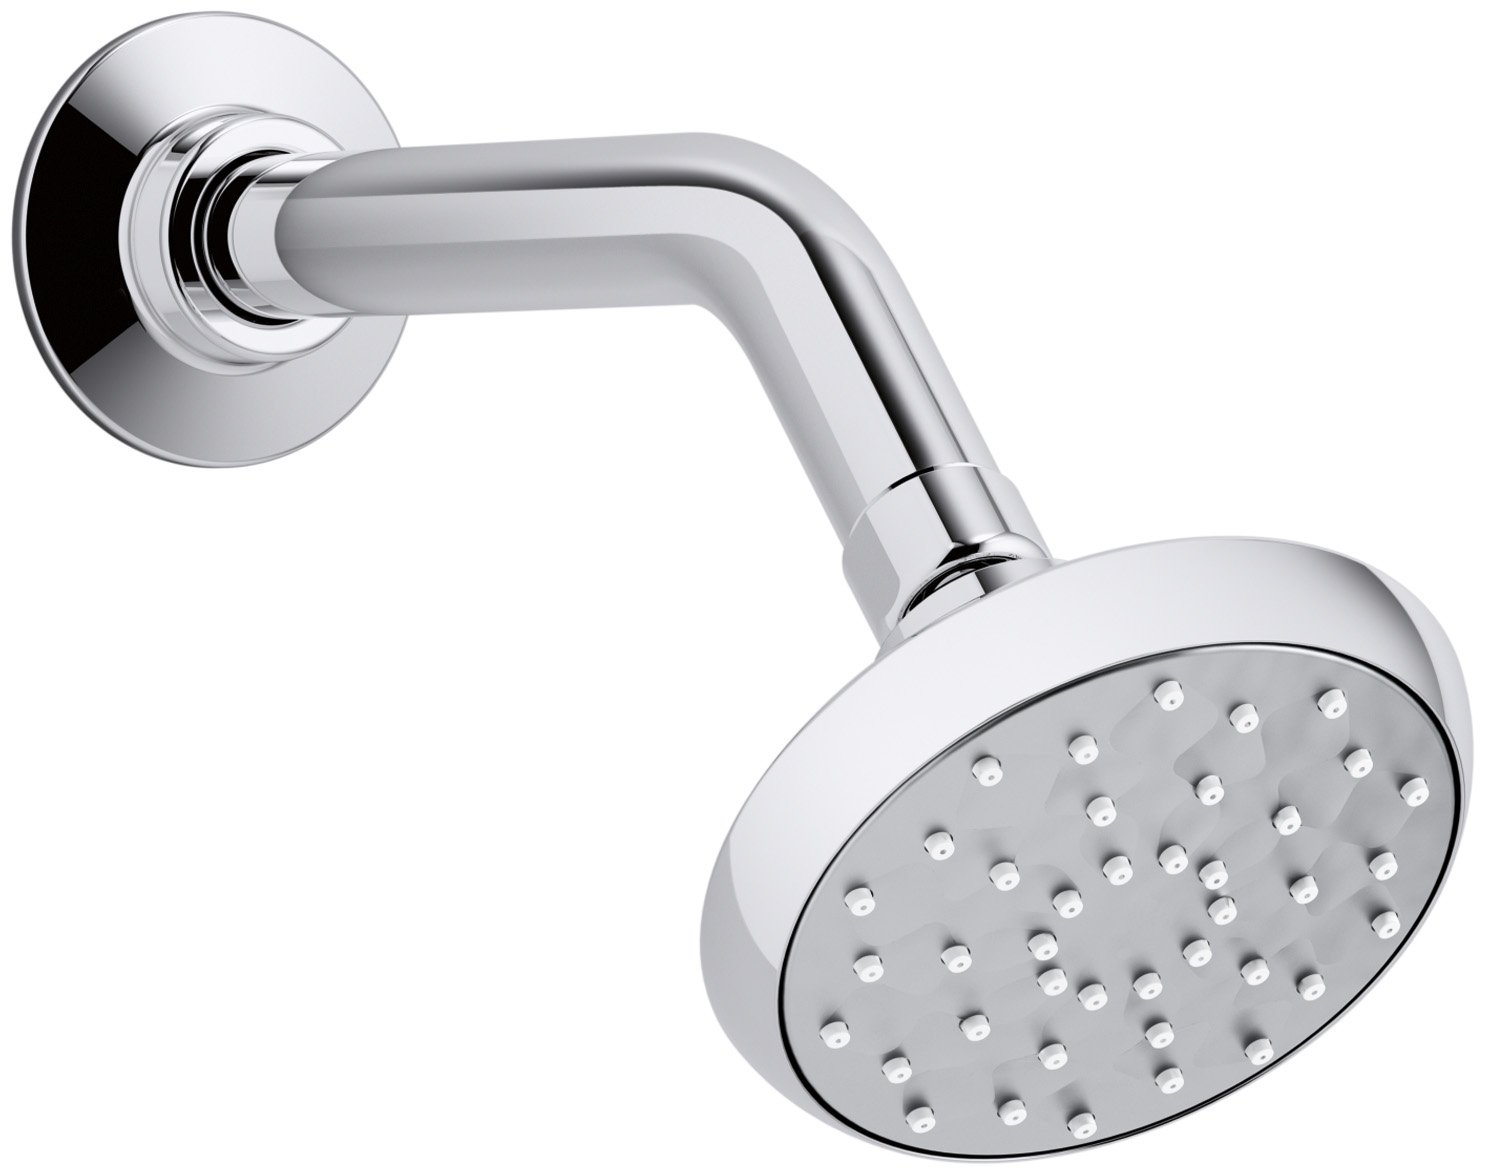 KOHLER K-72422-CP Awaken B90 Single-Function 1.5 GPM Showerhead, Polished Chrome